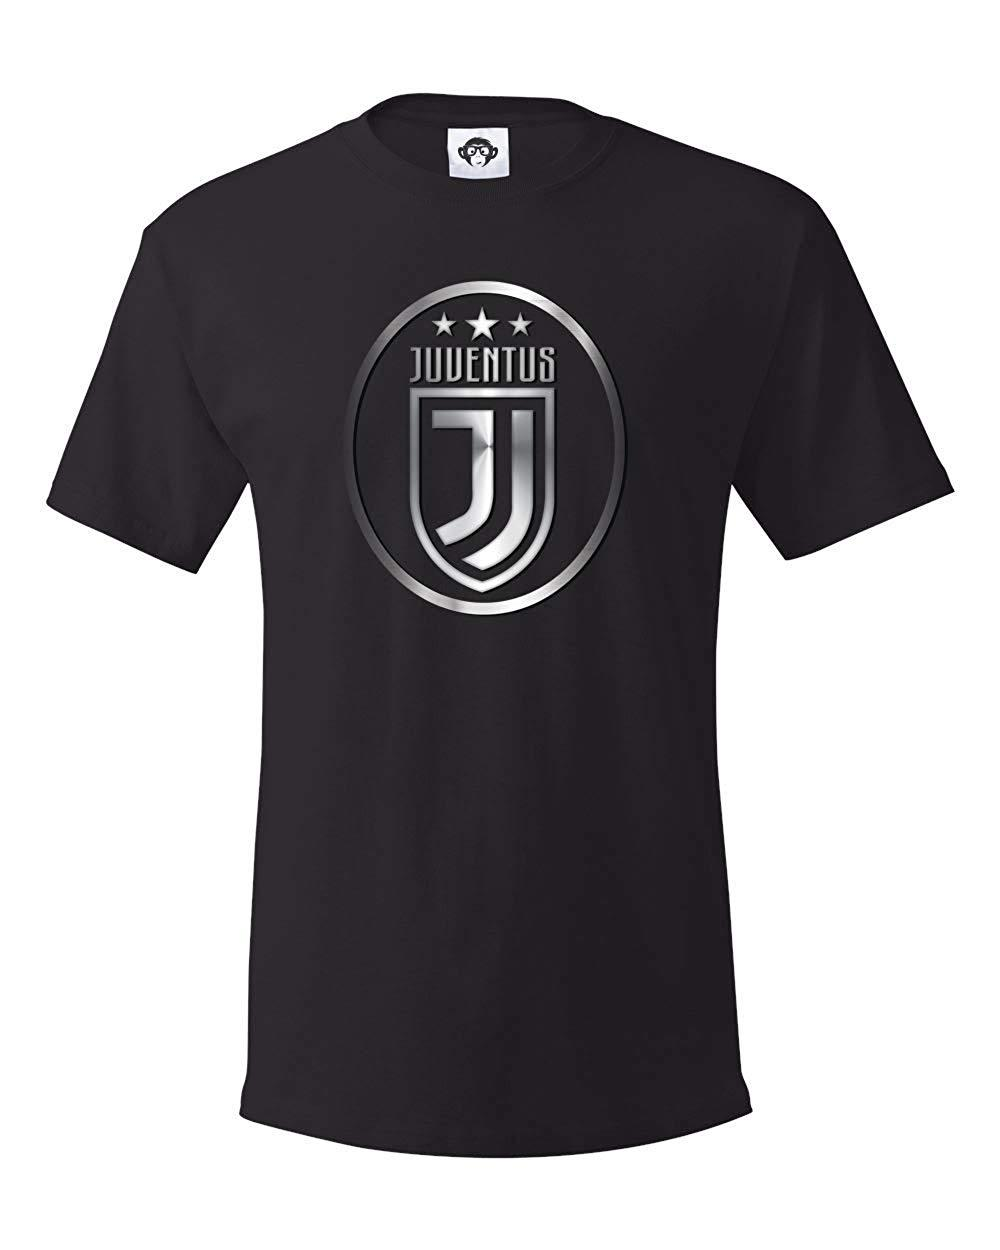 5d03aac7 FC, Juve, Soccer, Football, , Graphic Tee, Men'S T Shirt Mens 2018  Fashionable Brand 100%cotton Tops Wholesale Tee Casual Shirt Short Sleeve  Shirt From ...